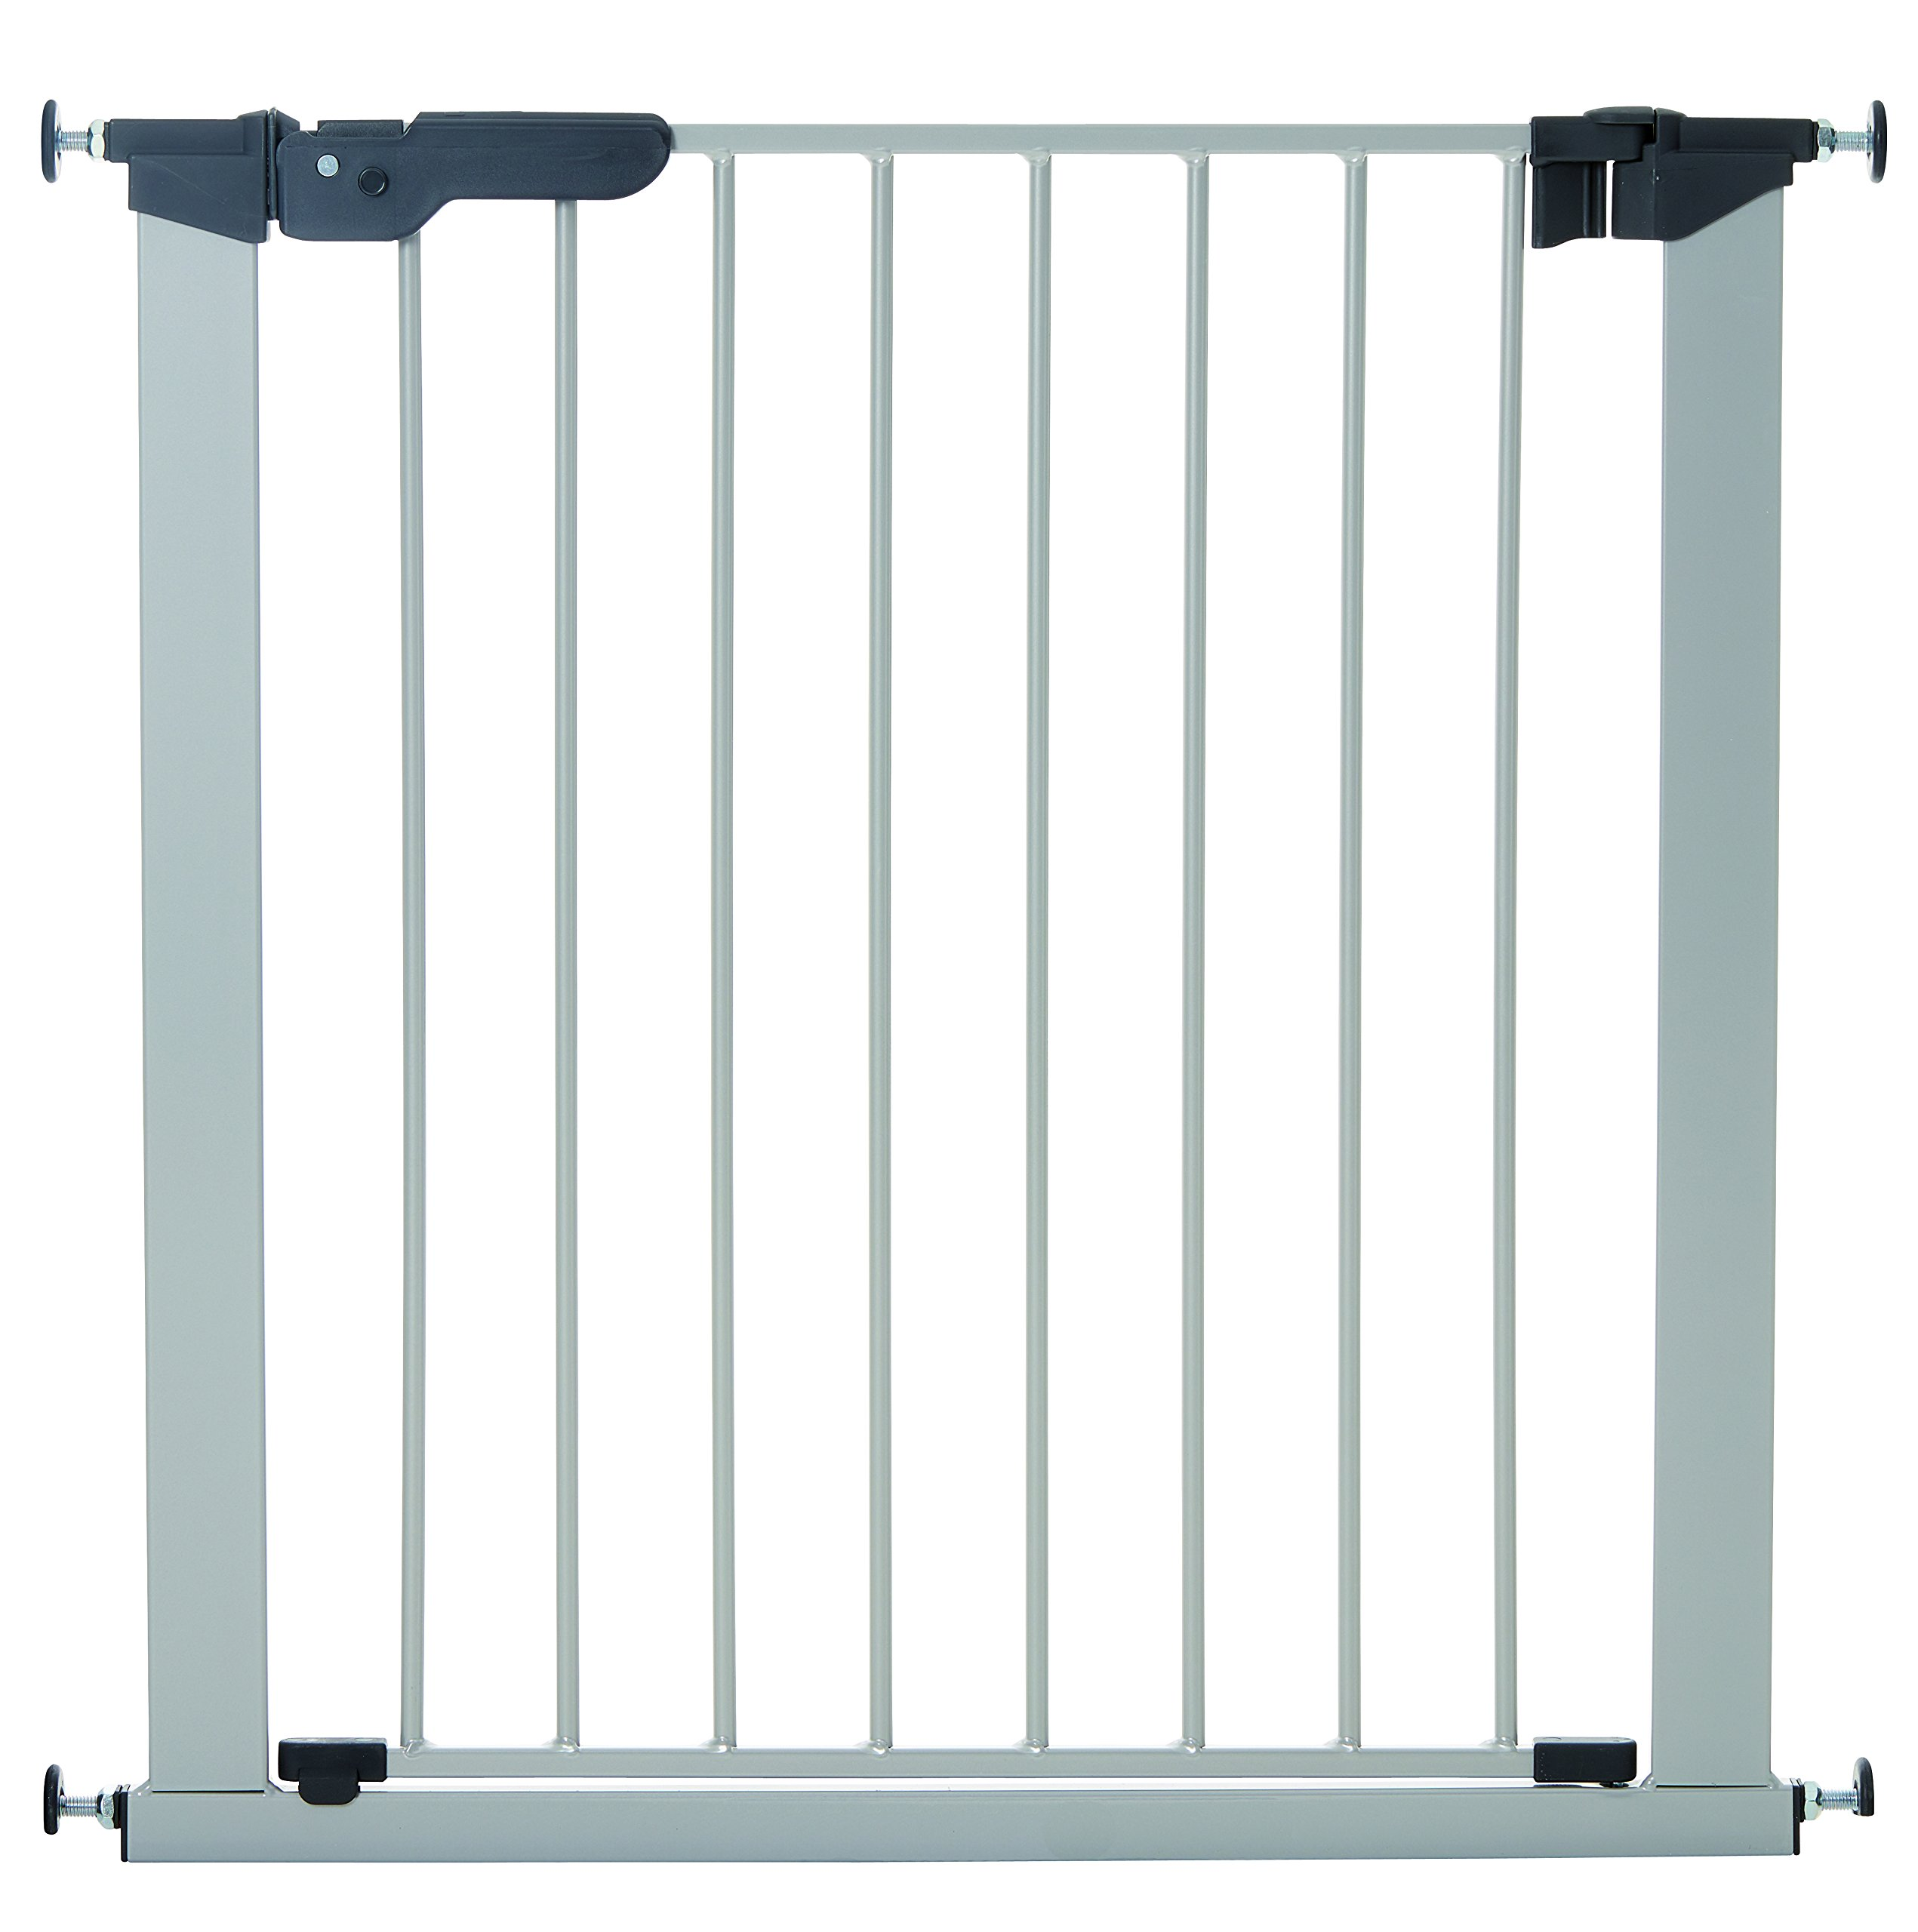 BabyDan Premier Indicator Stair Gate Pressure Fit 73 - 80 cm silver - Collection 2015  True pressure fit safety gate Covers openings from 28.9 up to 46.9 inches with separate available extensions Extra safety pressure indicator built into the slim line handle 1